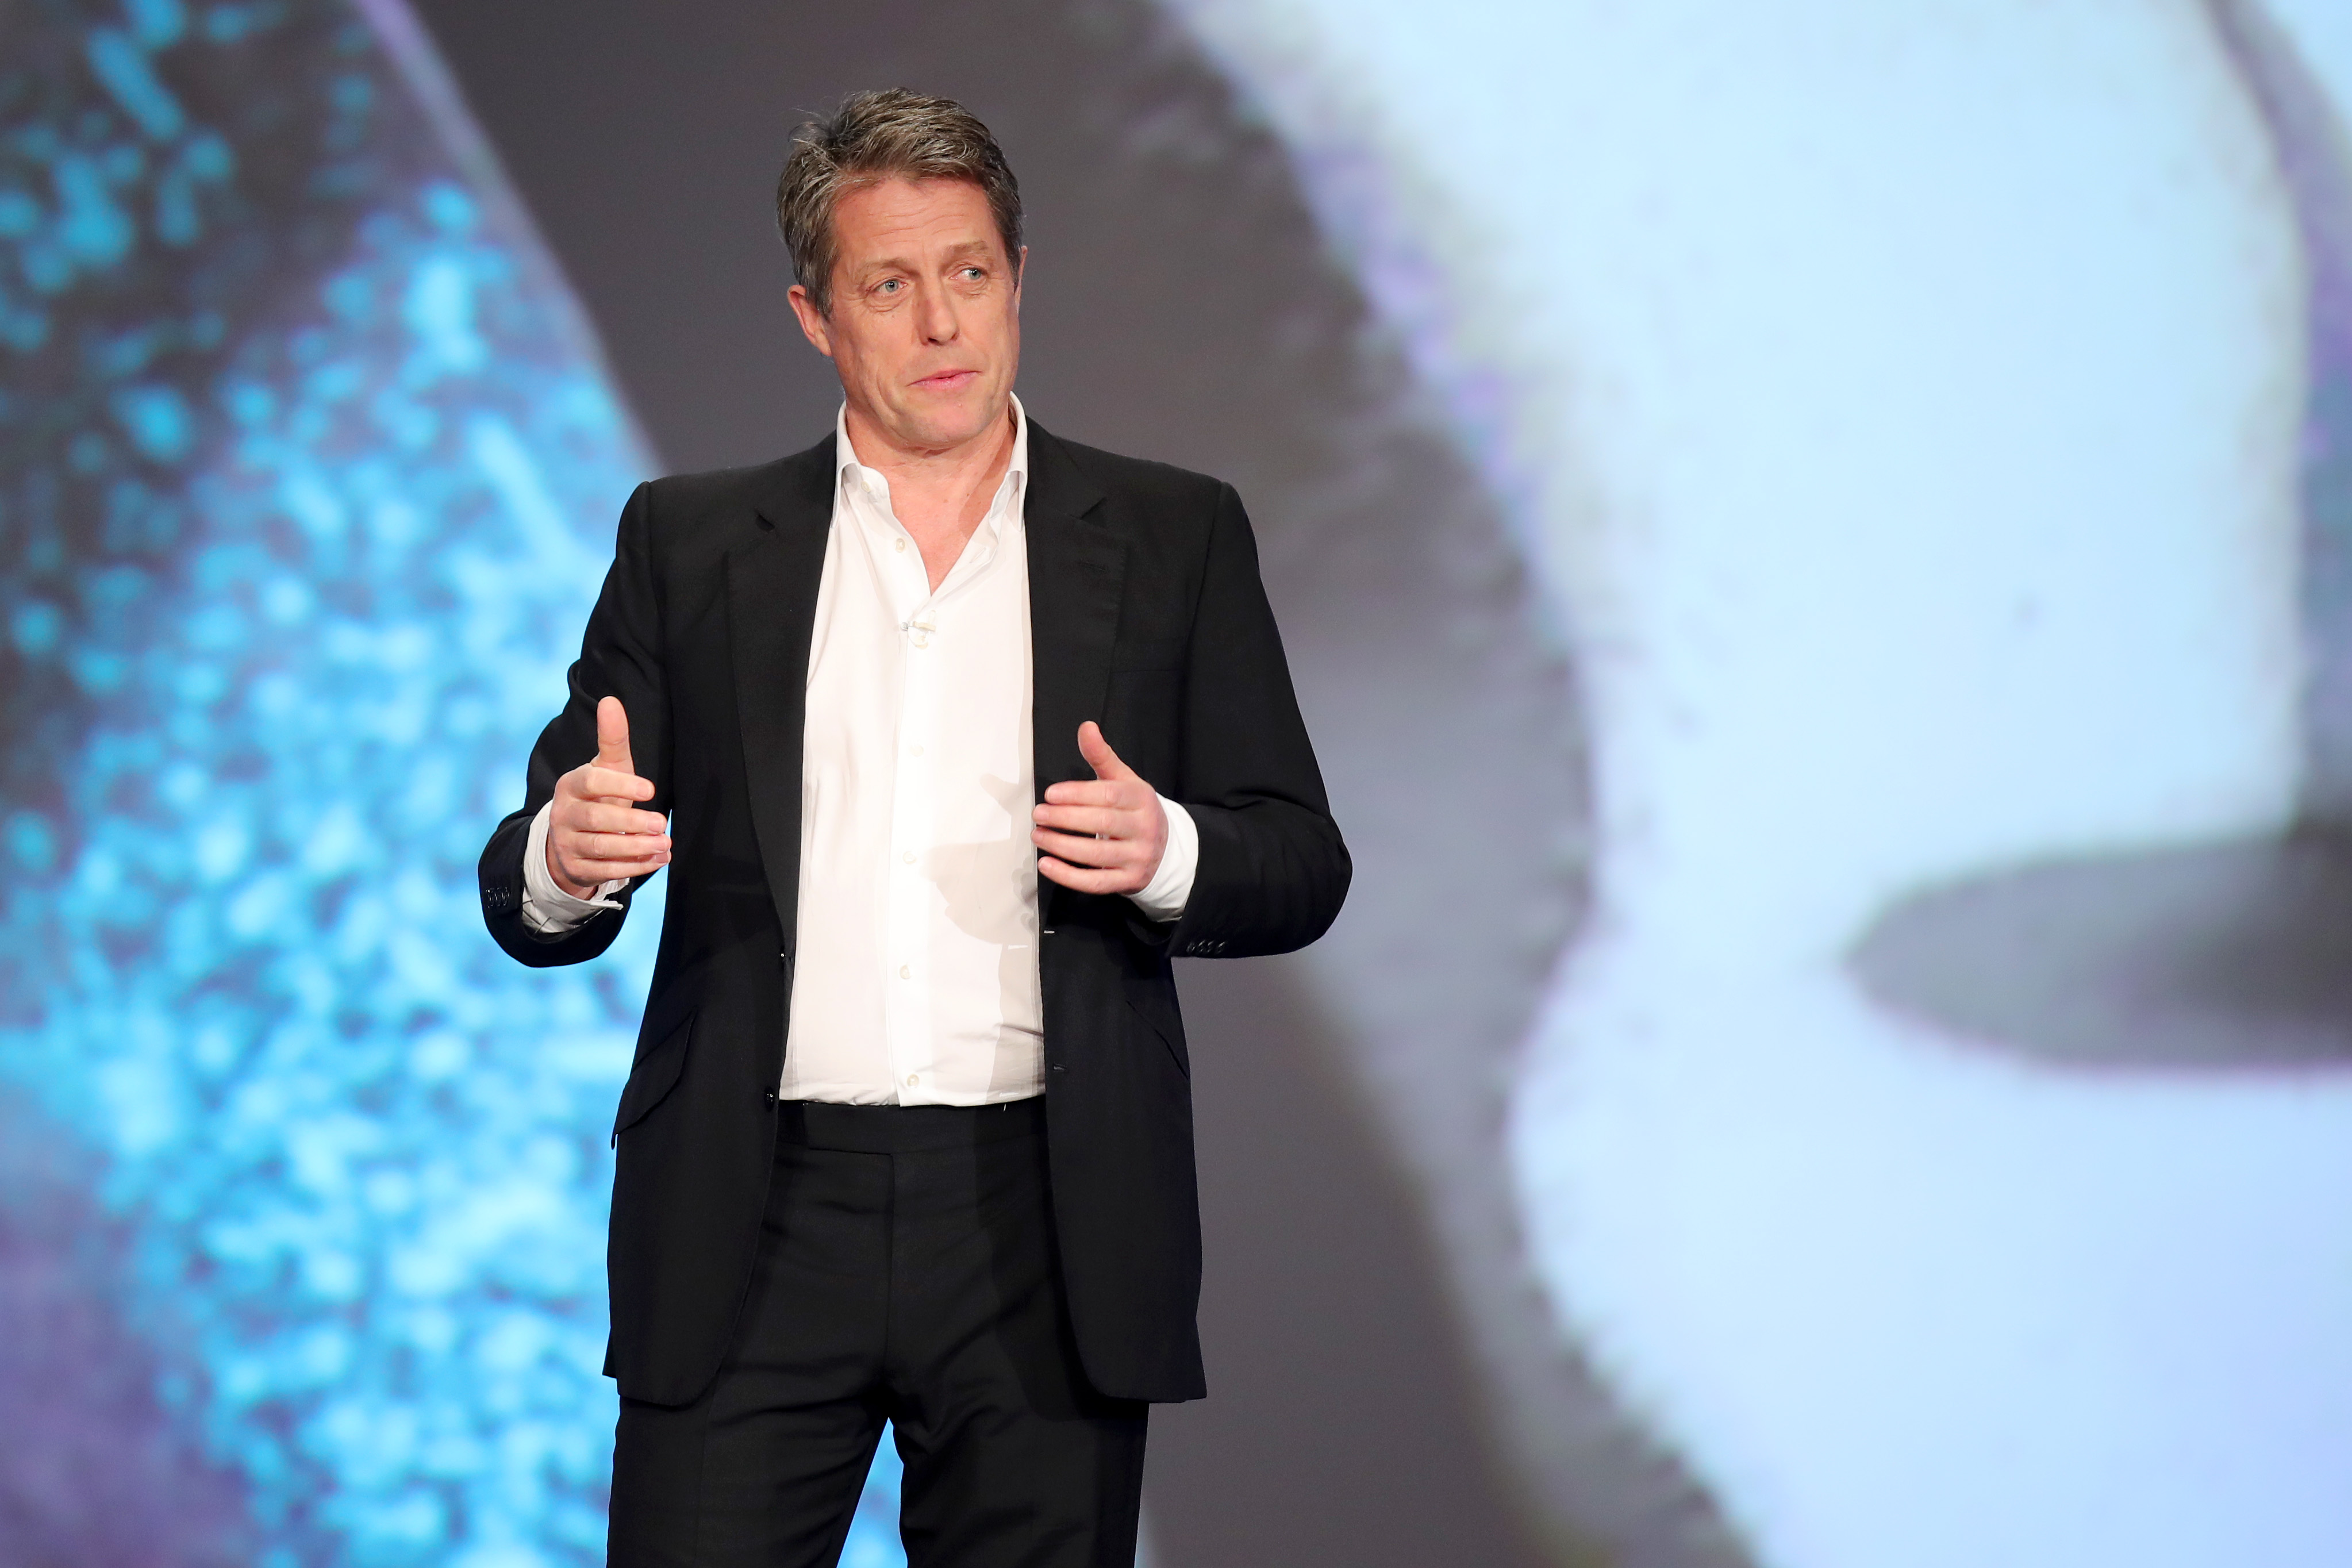 Hugh Grant has a surprising theory about George Clooney (Photo by Andreas Rentz/Getty Images for Laureus)